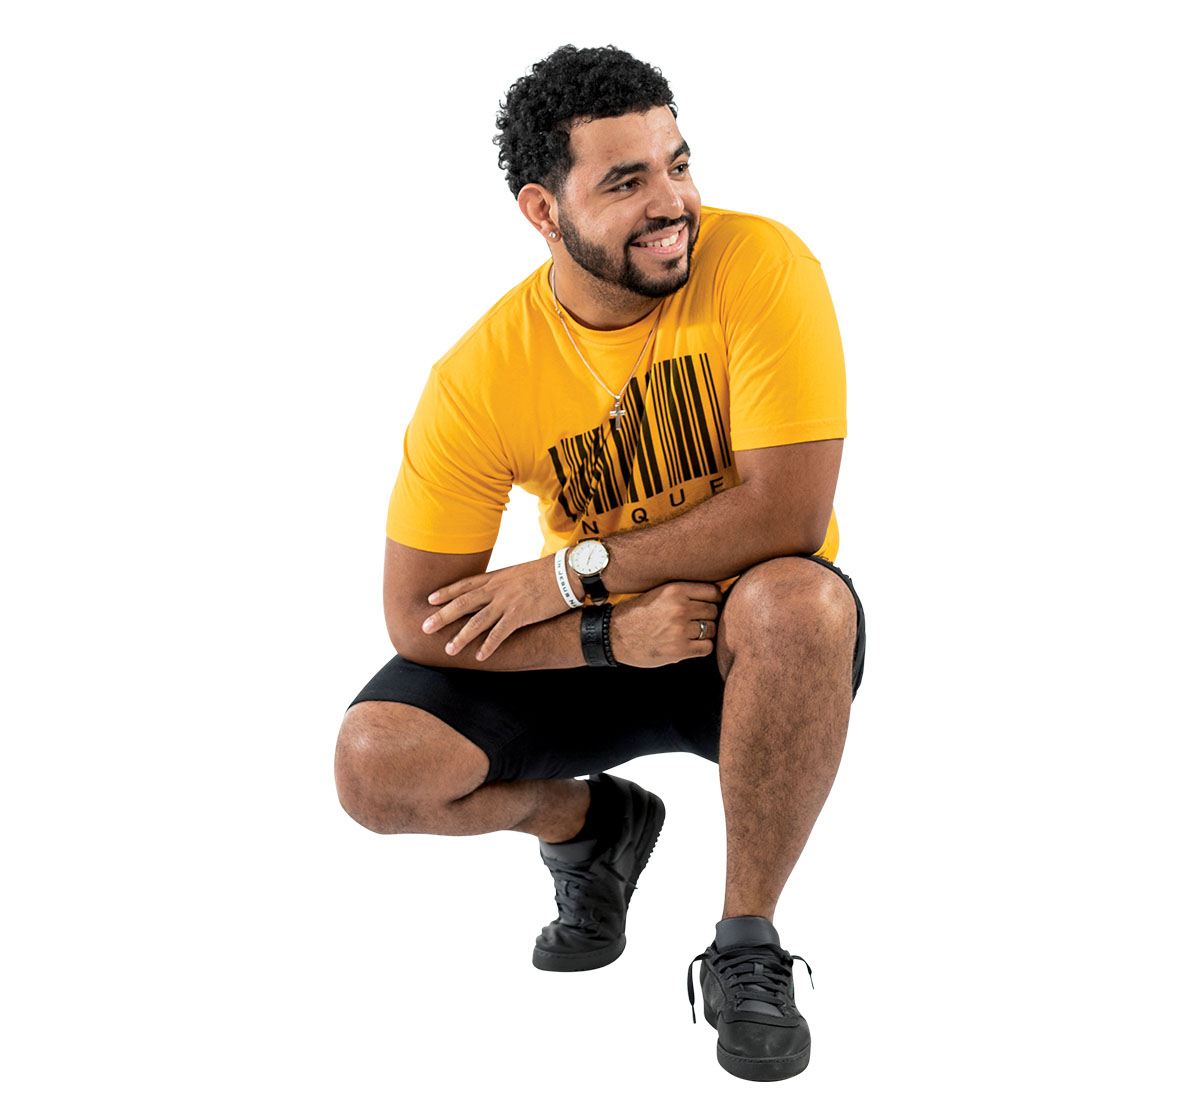 A man in a yellow shirt and black shorts crouches down while he looks to the side and smiles.